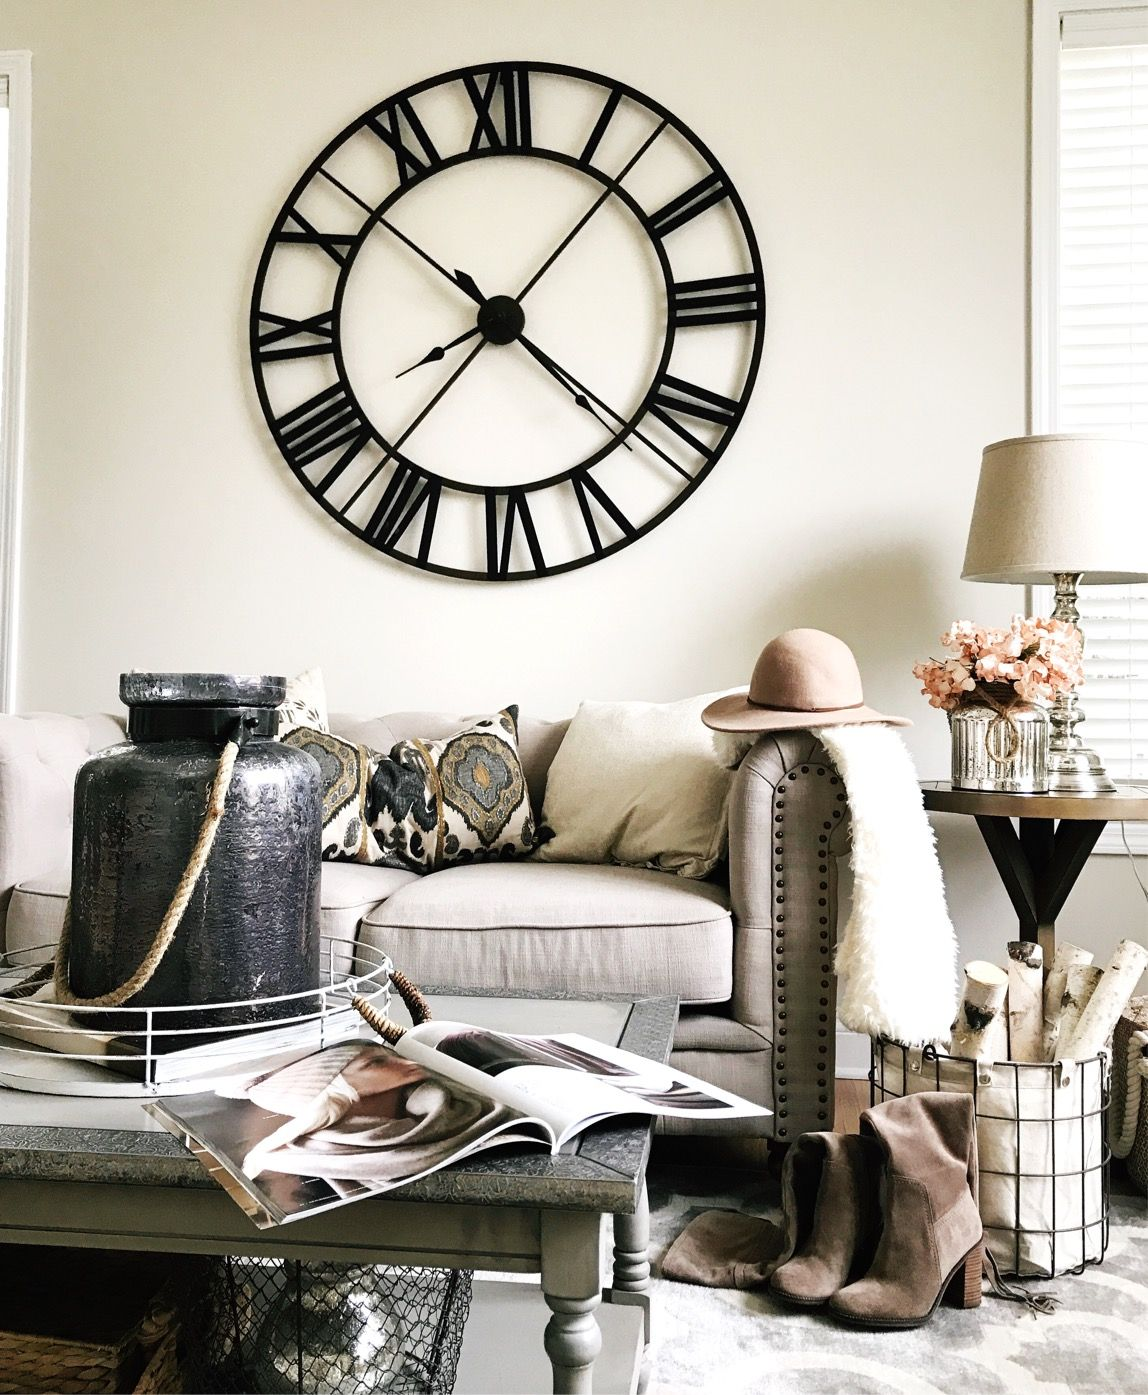 Rustic Farmhouse Decor Living Room Decor Ideas Large Wall Clock White Decor Th Wall Clocks Living Room Rustic Farmhouse Decor Farmhouse Decor Living Room